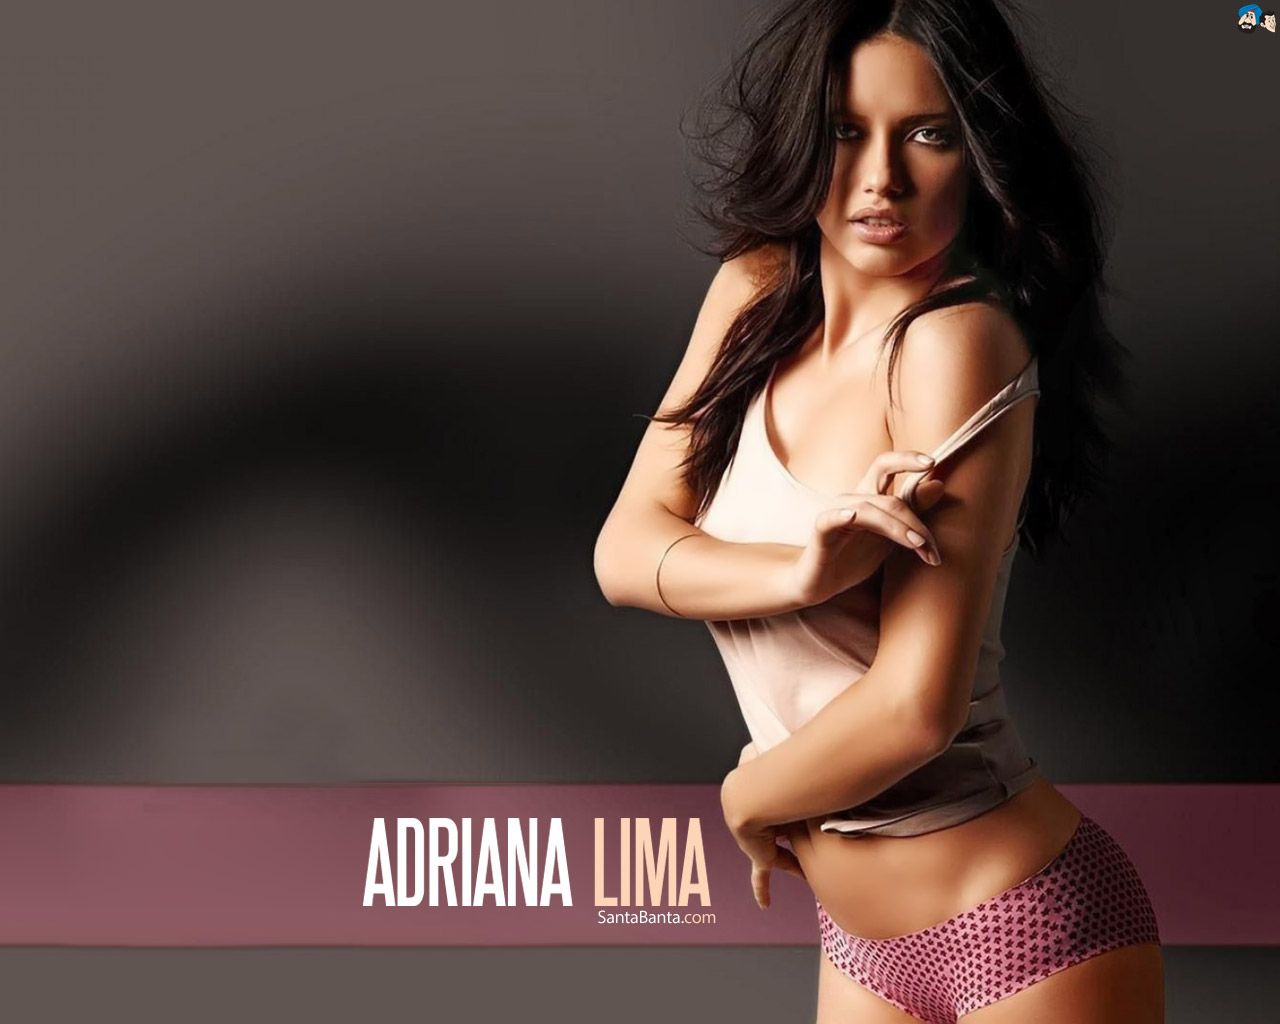 adriana lima hd wallpapers pictures hd wallpapers   wallpapers and